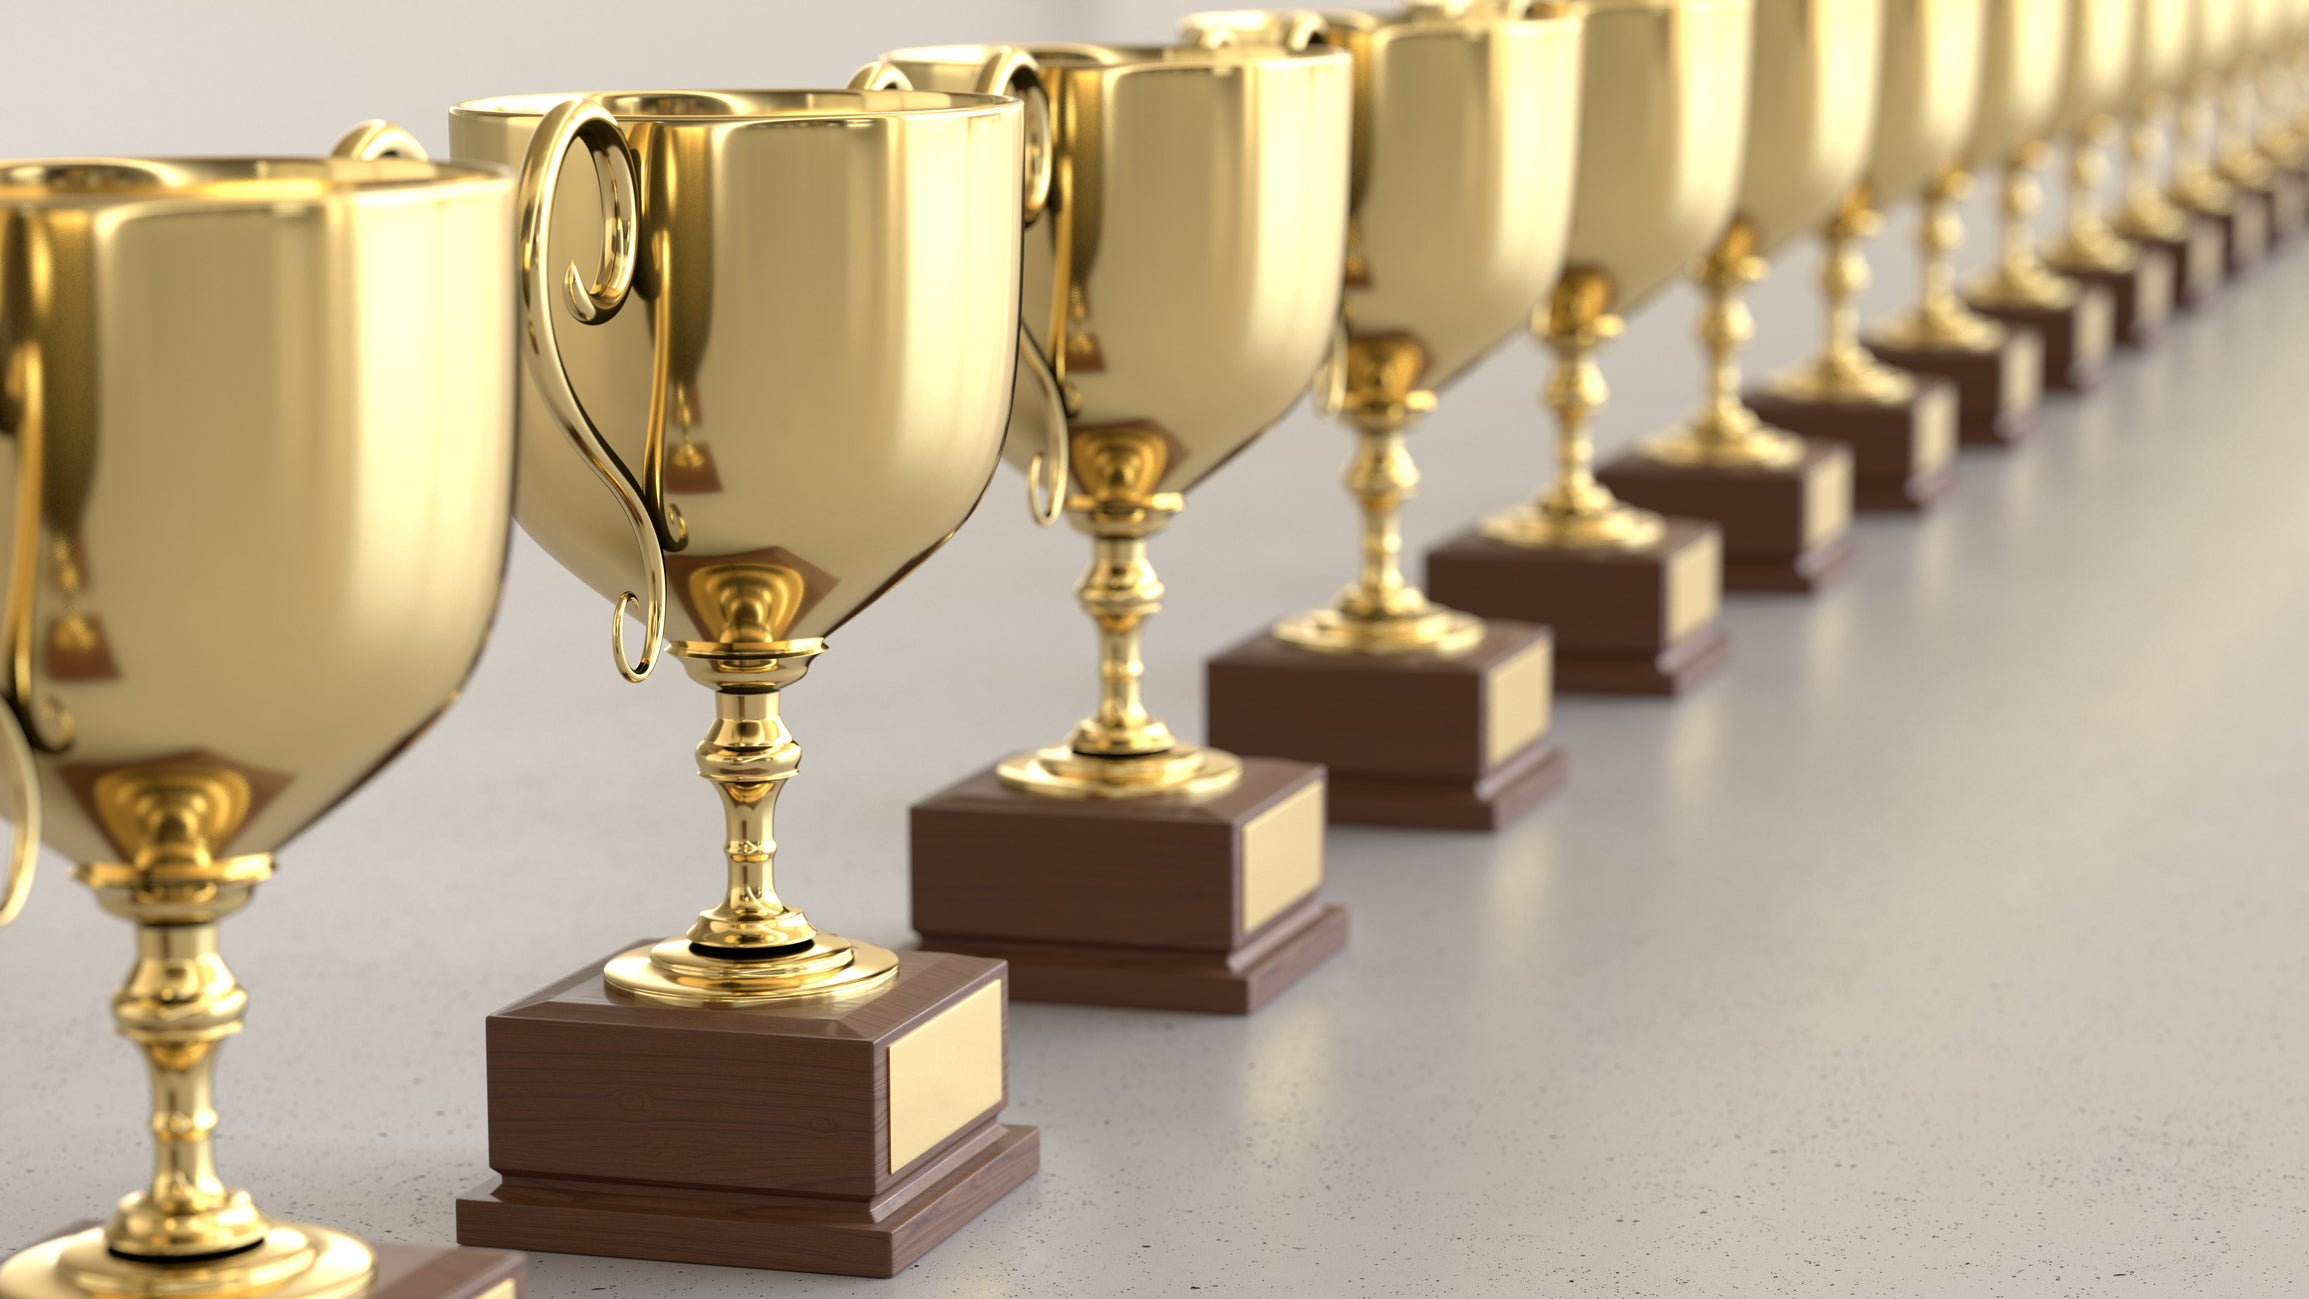 A row of gold trophies on a grey table.